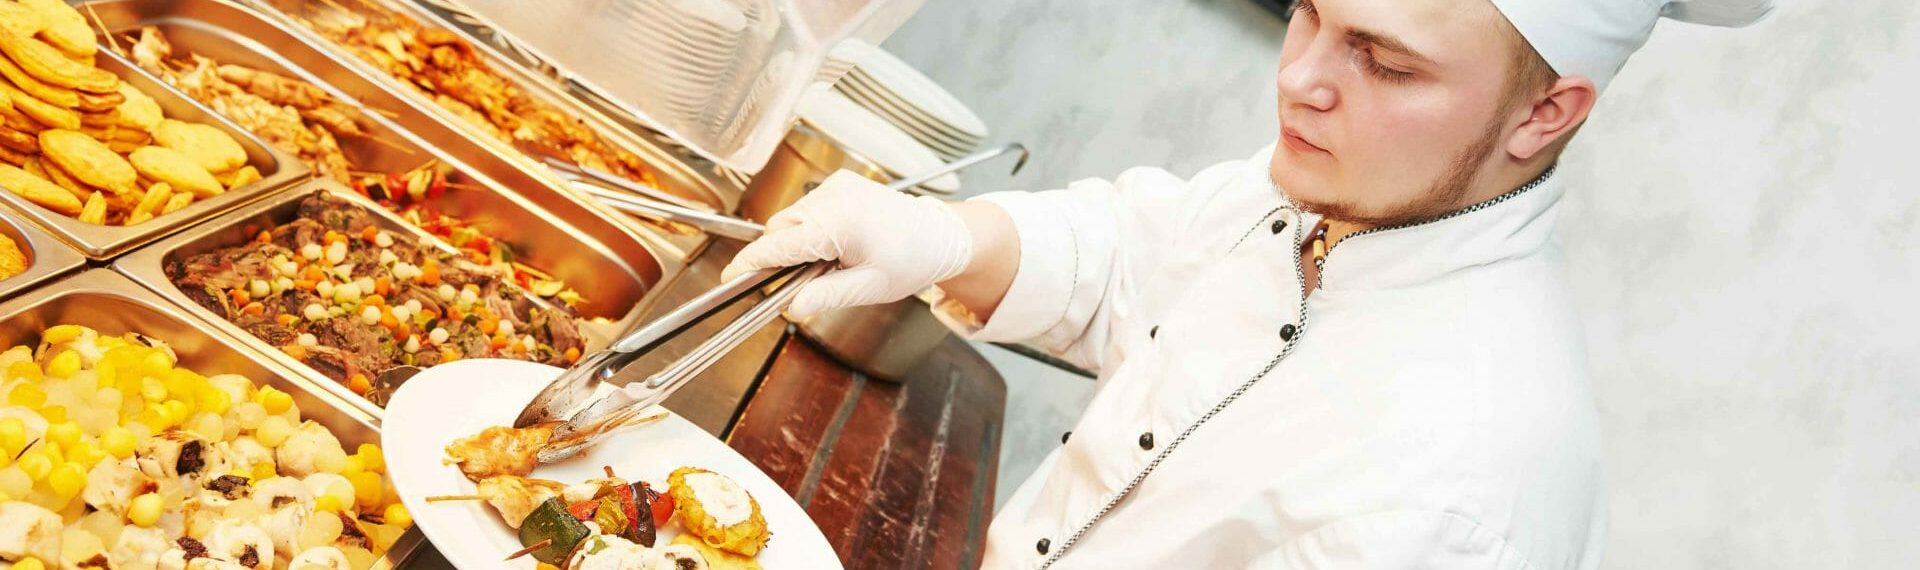 How much does Catering Insurance cost in the UK?